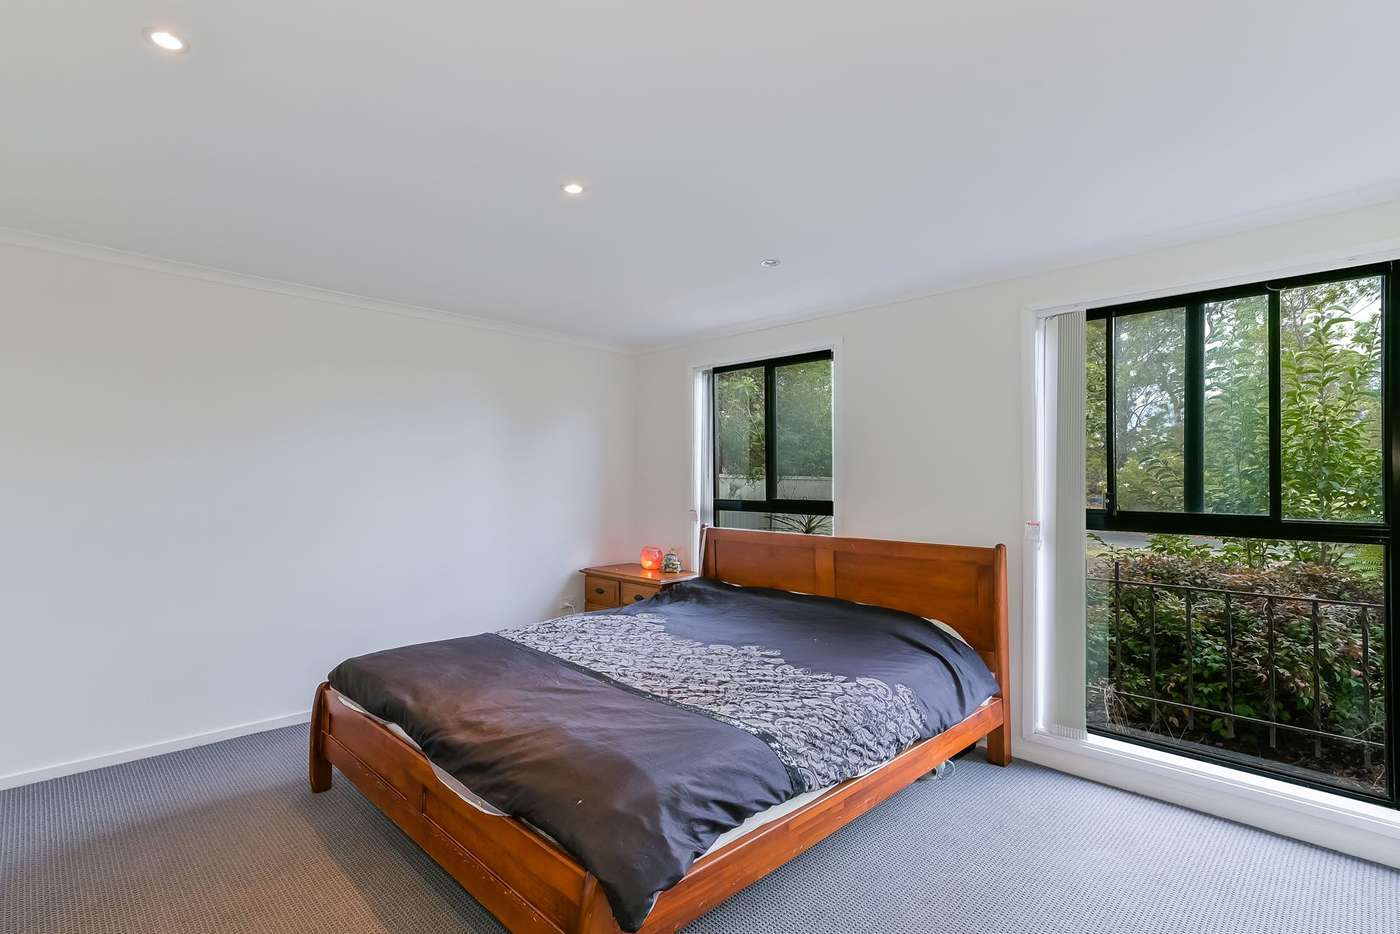 Sixth view of Homely house listing, 59 Fraser Street, Tahmoor NSW 2573